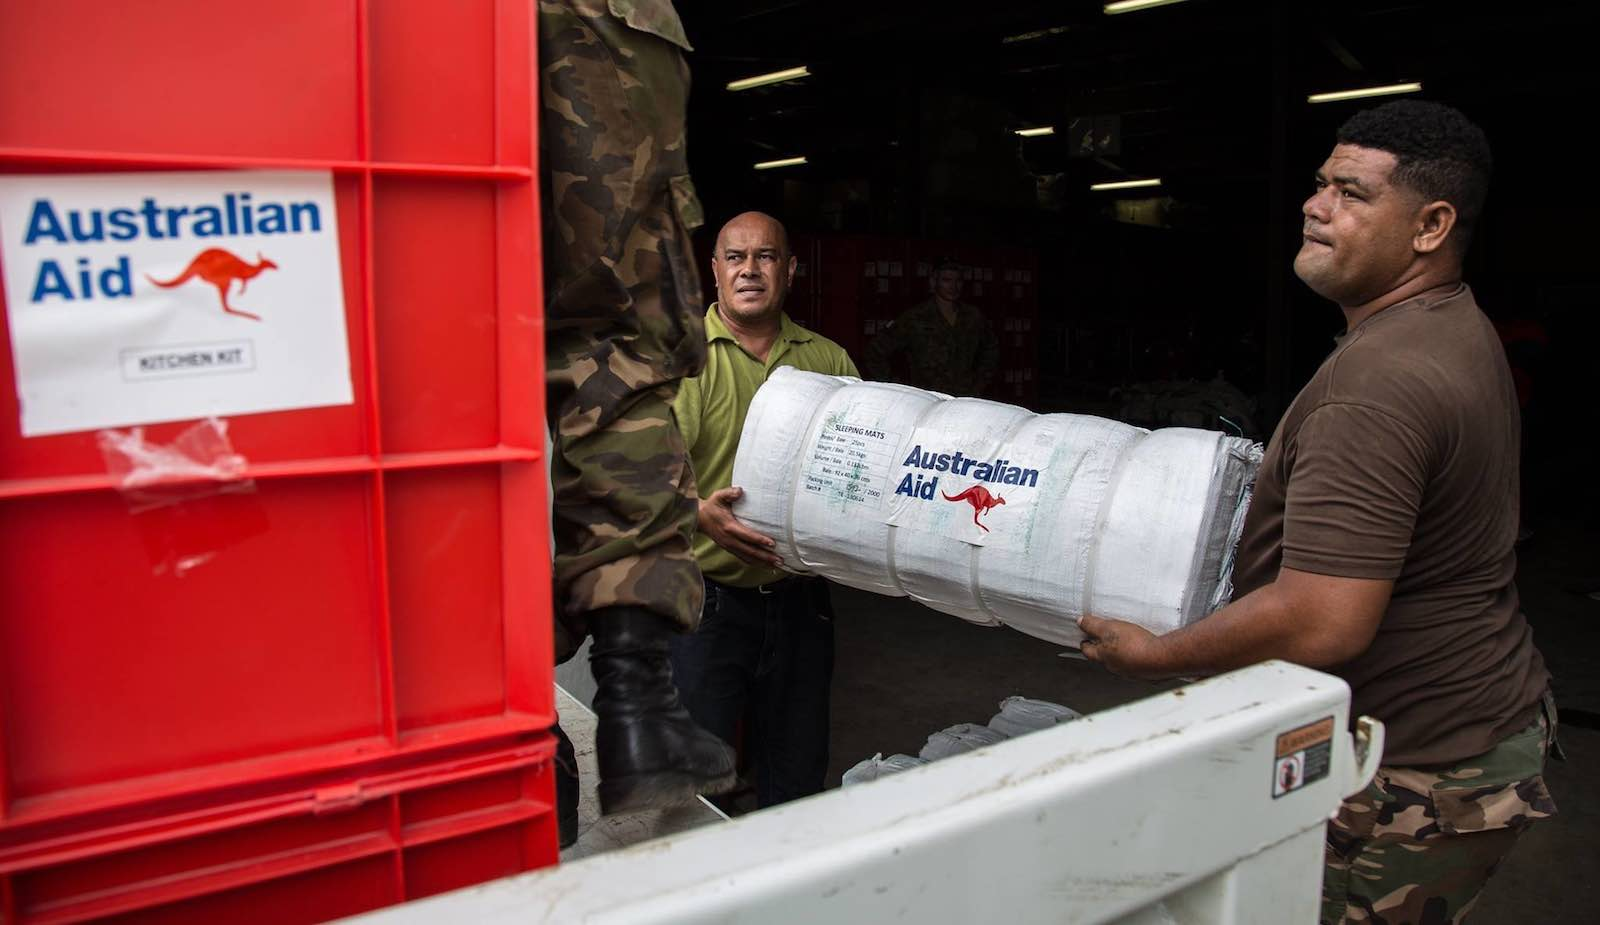 A volunteer helps a Tonga Defense Service soldier unload Australian aid supplies after Cyclone Gita, May 2018 (Photo: AHC Nakualofa/Flickr)